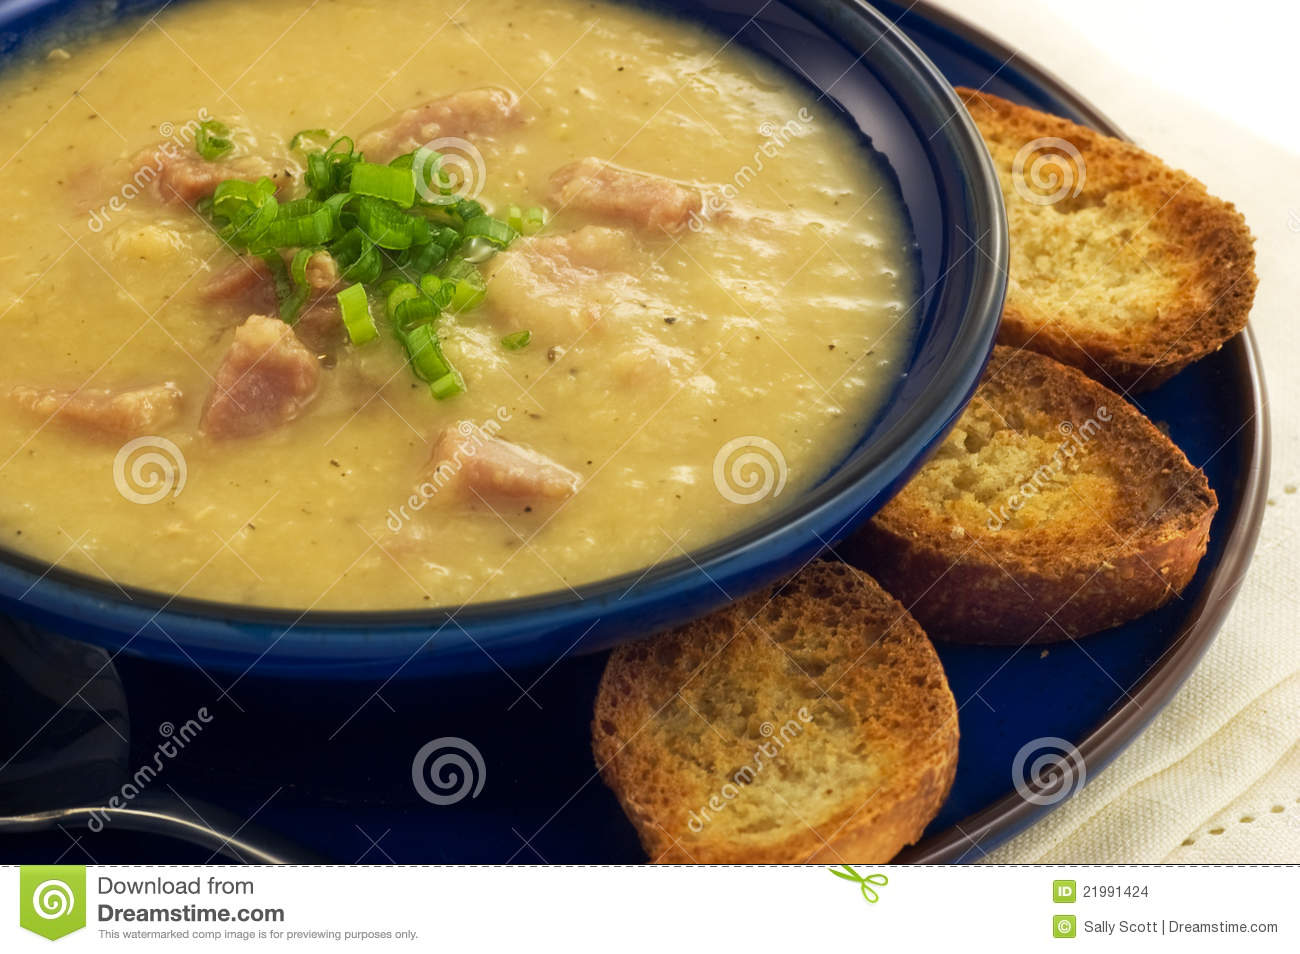 Ham And Lentil Soup Stock Images - Image: 21991424